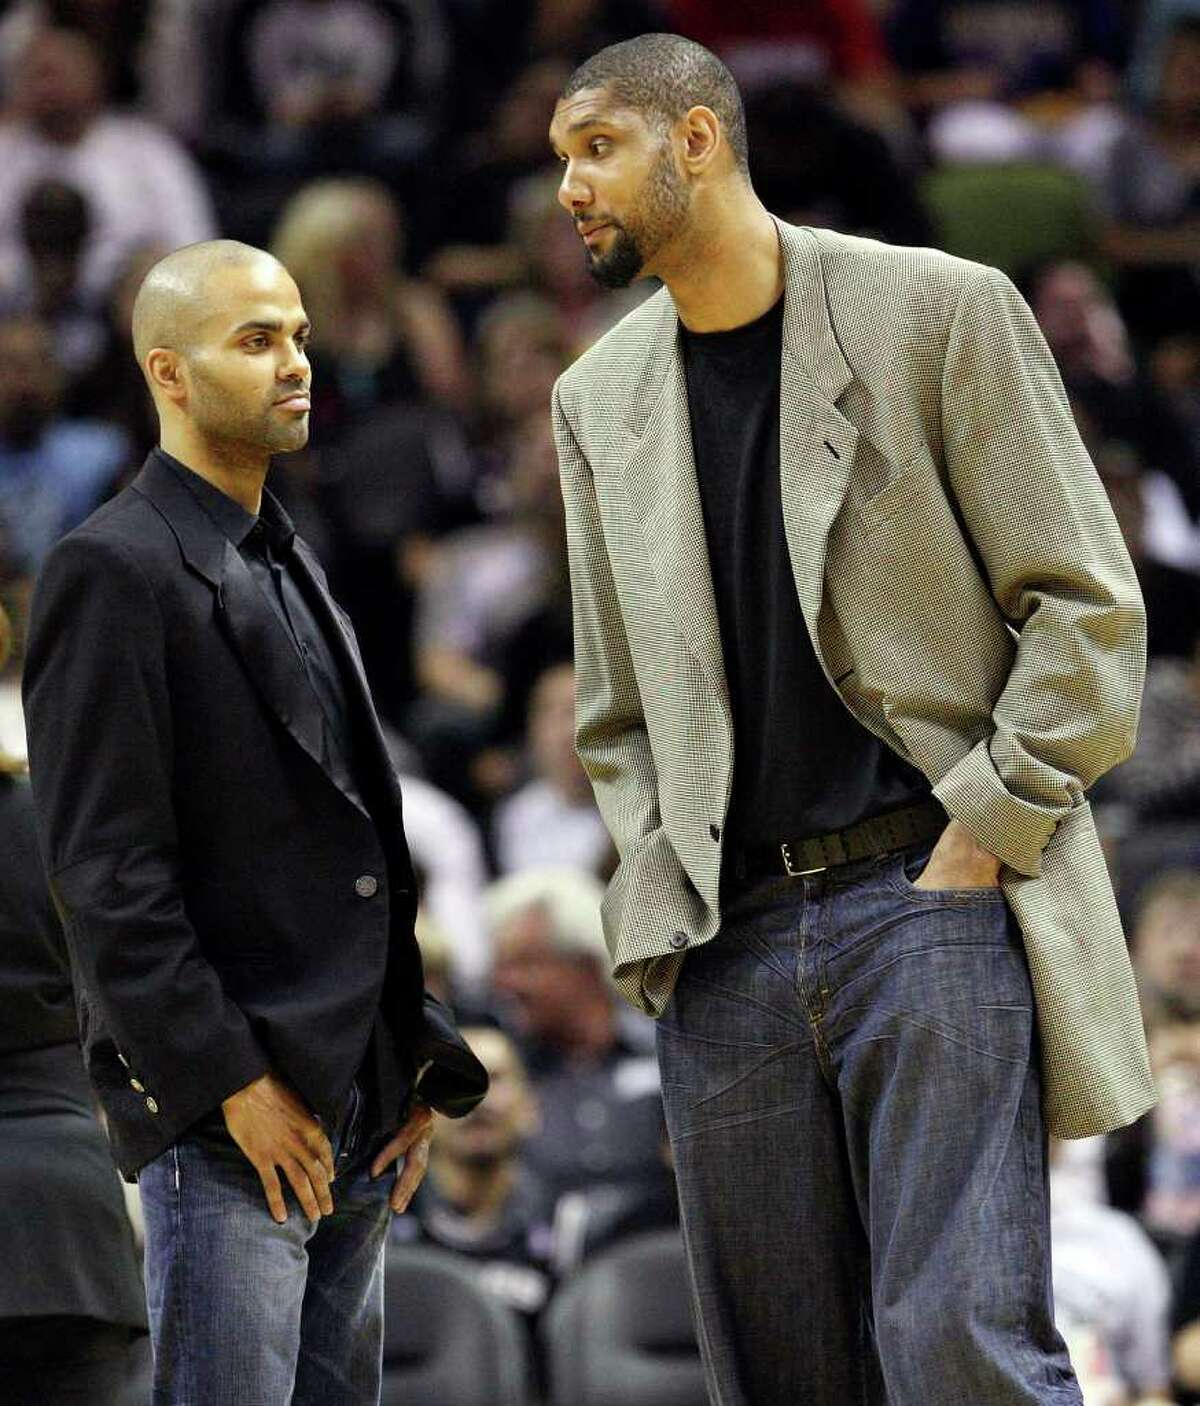 FOR SPORTS - Spurs' Tony Parker and Spurs' Tim Duncan stand on the court during a timeout against the Trail Blazers in the second half Monday March 28, 2011 at the AT&T Center. The Trail Blazers won 100-92. (PHOTO BY EDWARD A. ORNELAS/eaornelas@express-news.net)